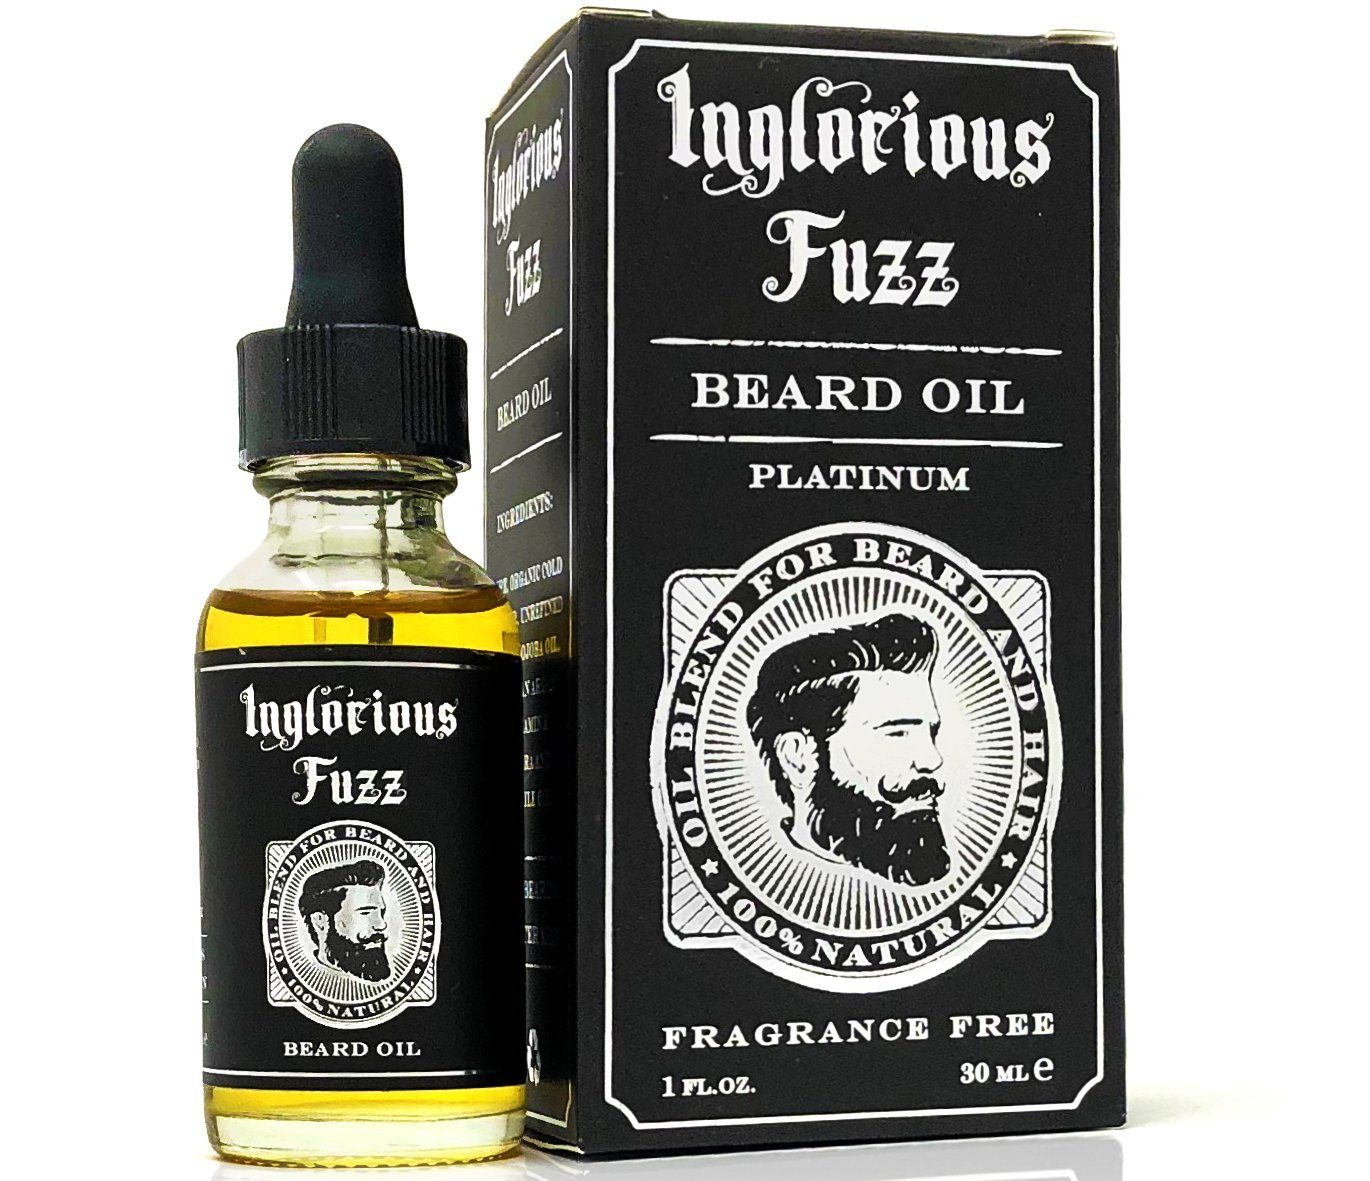 inglorious fuzz beard oil